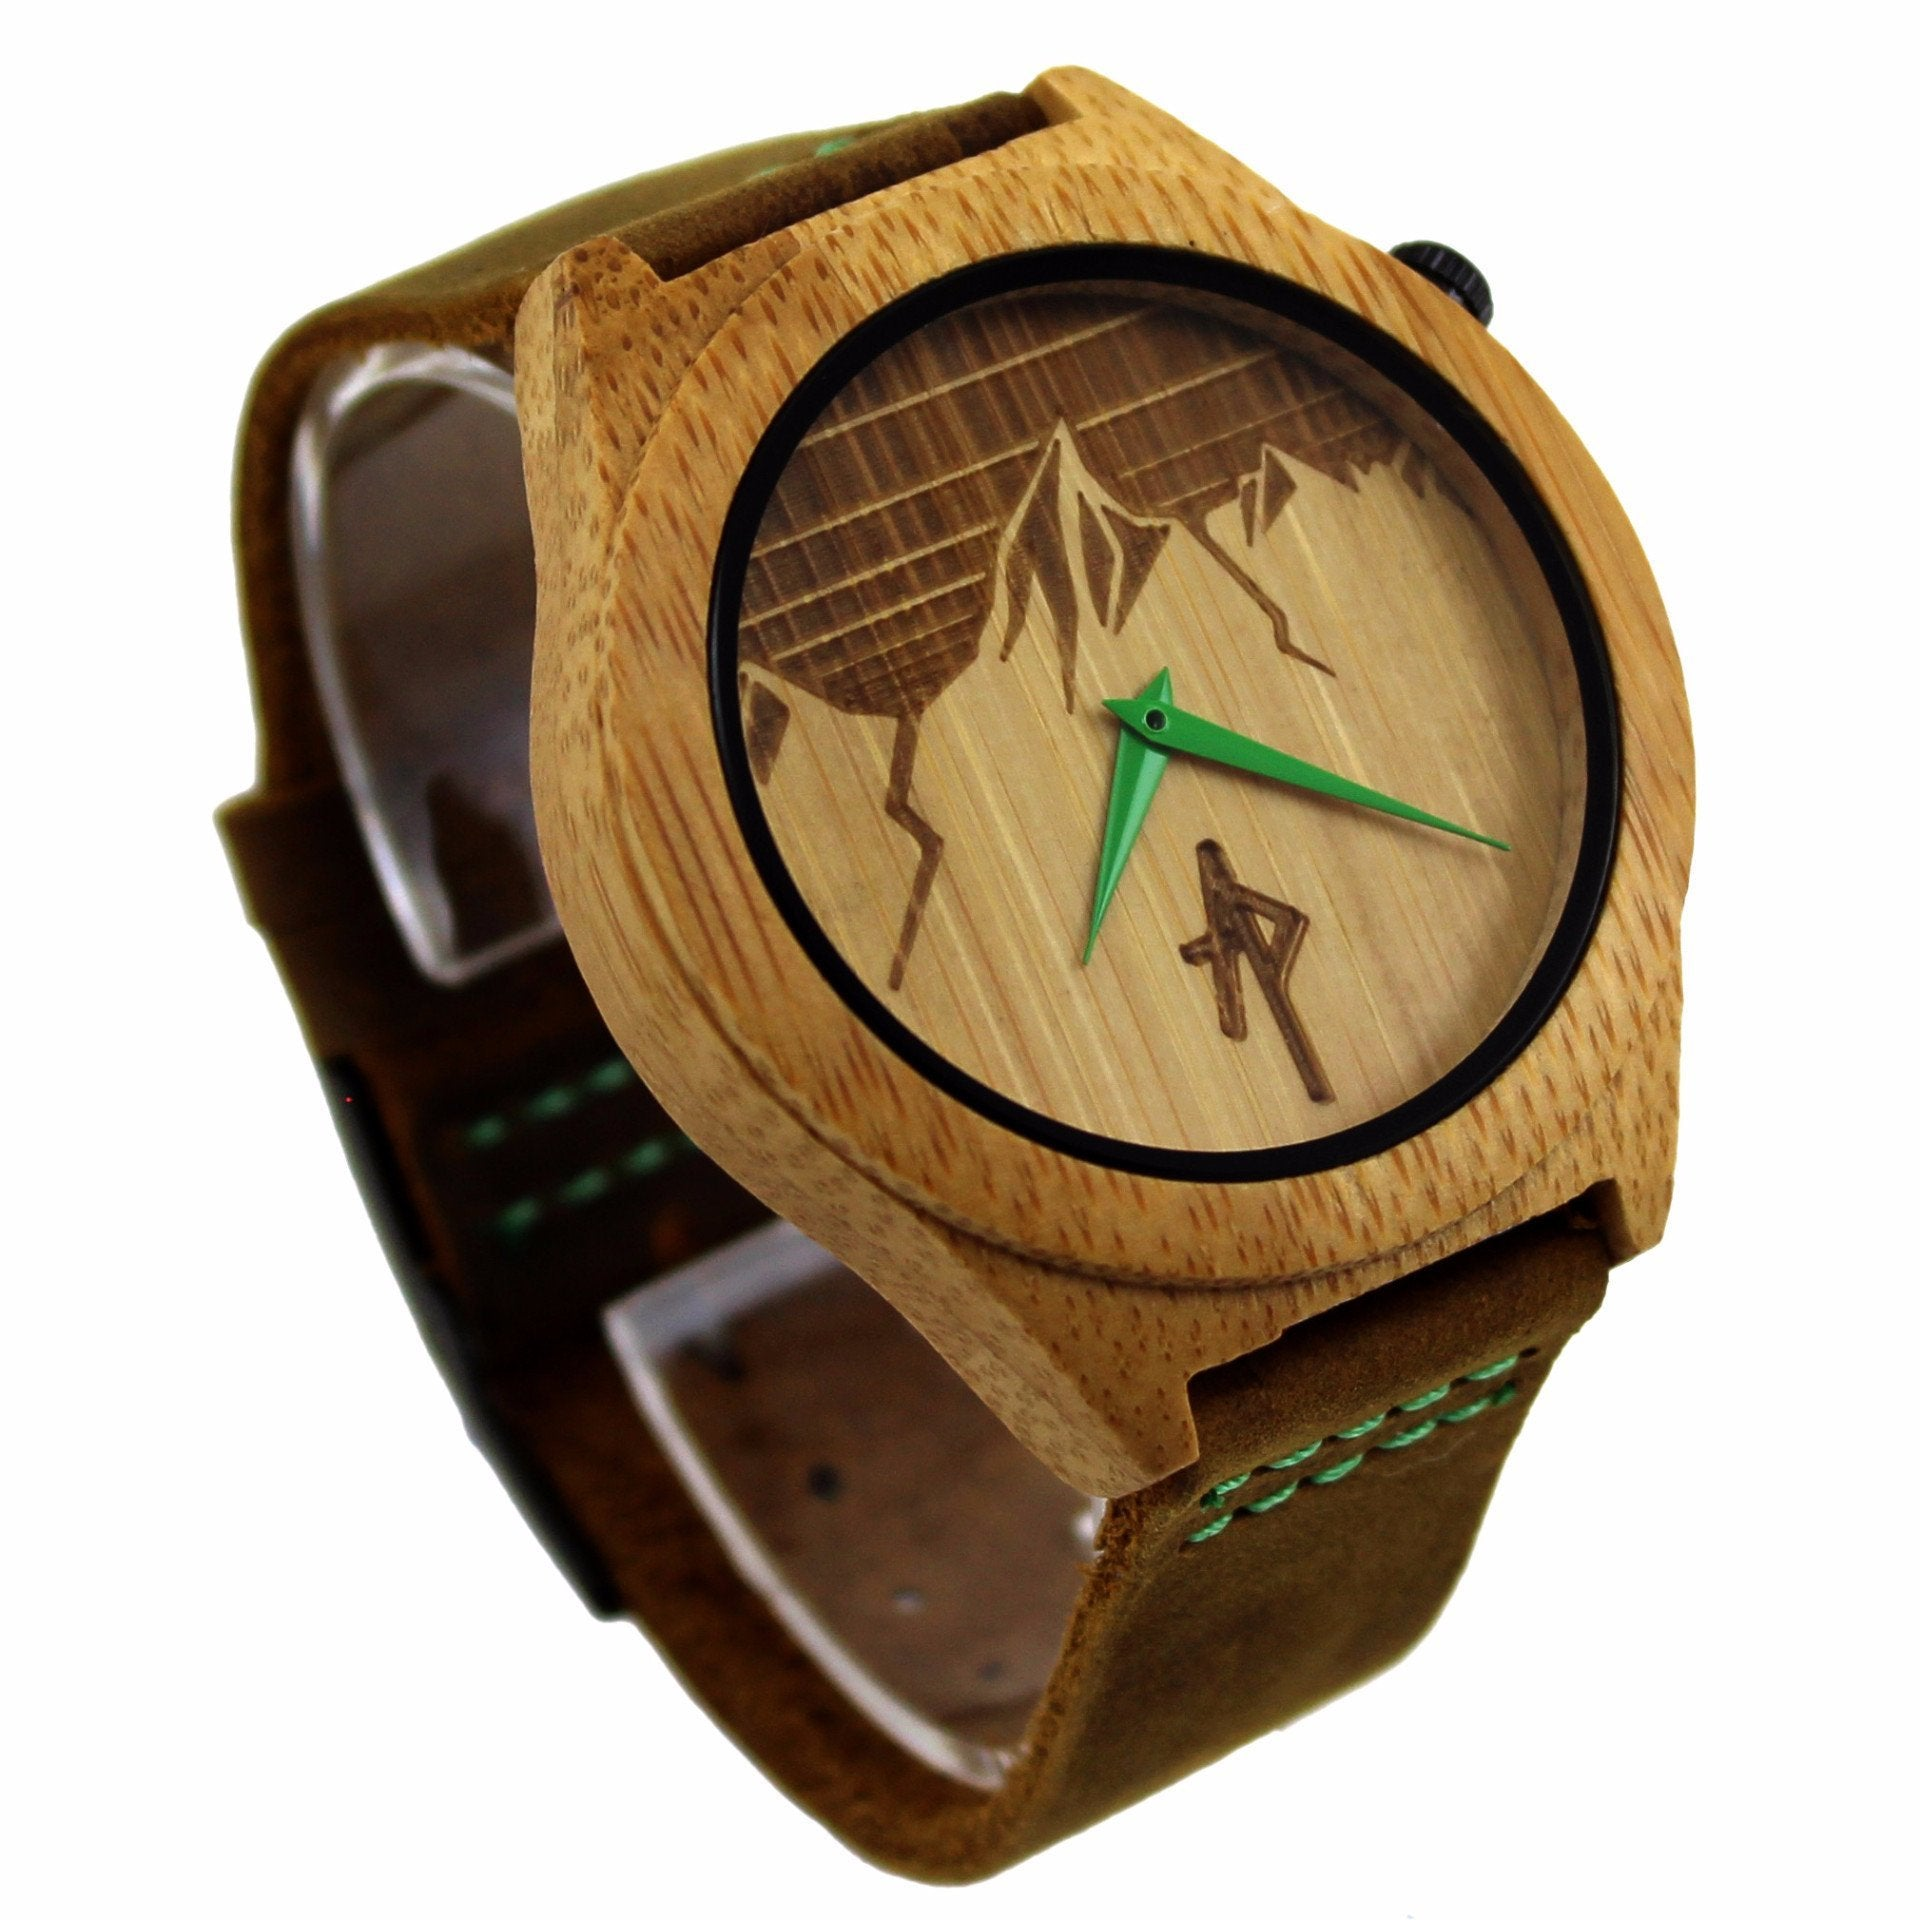 products at wellington buy image product watches bamboo only for